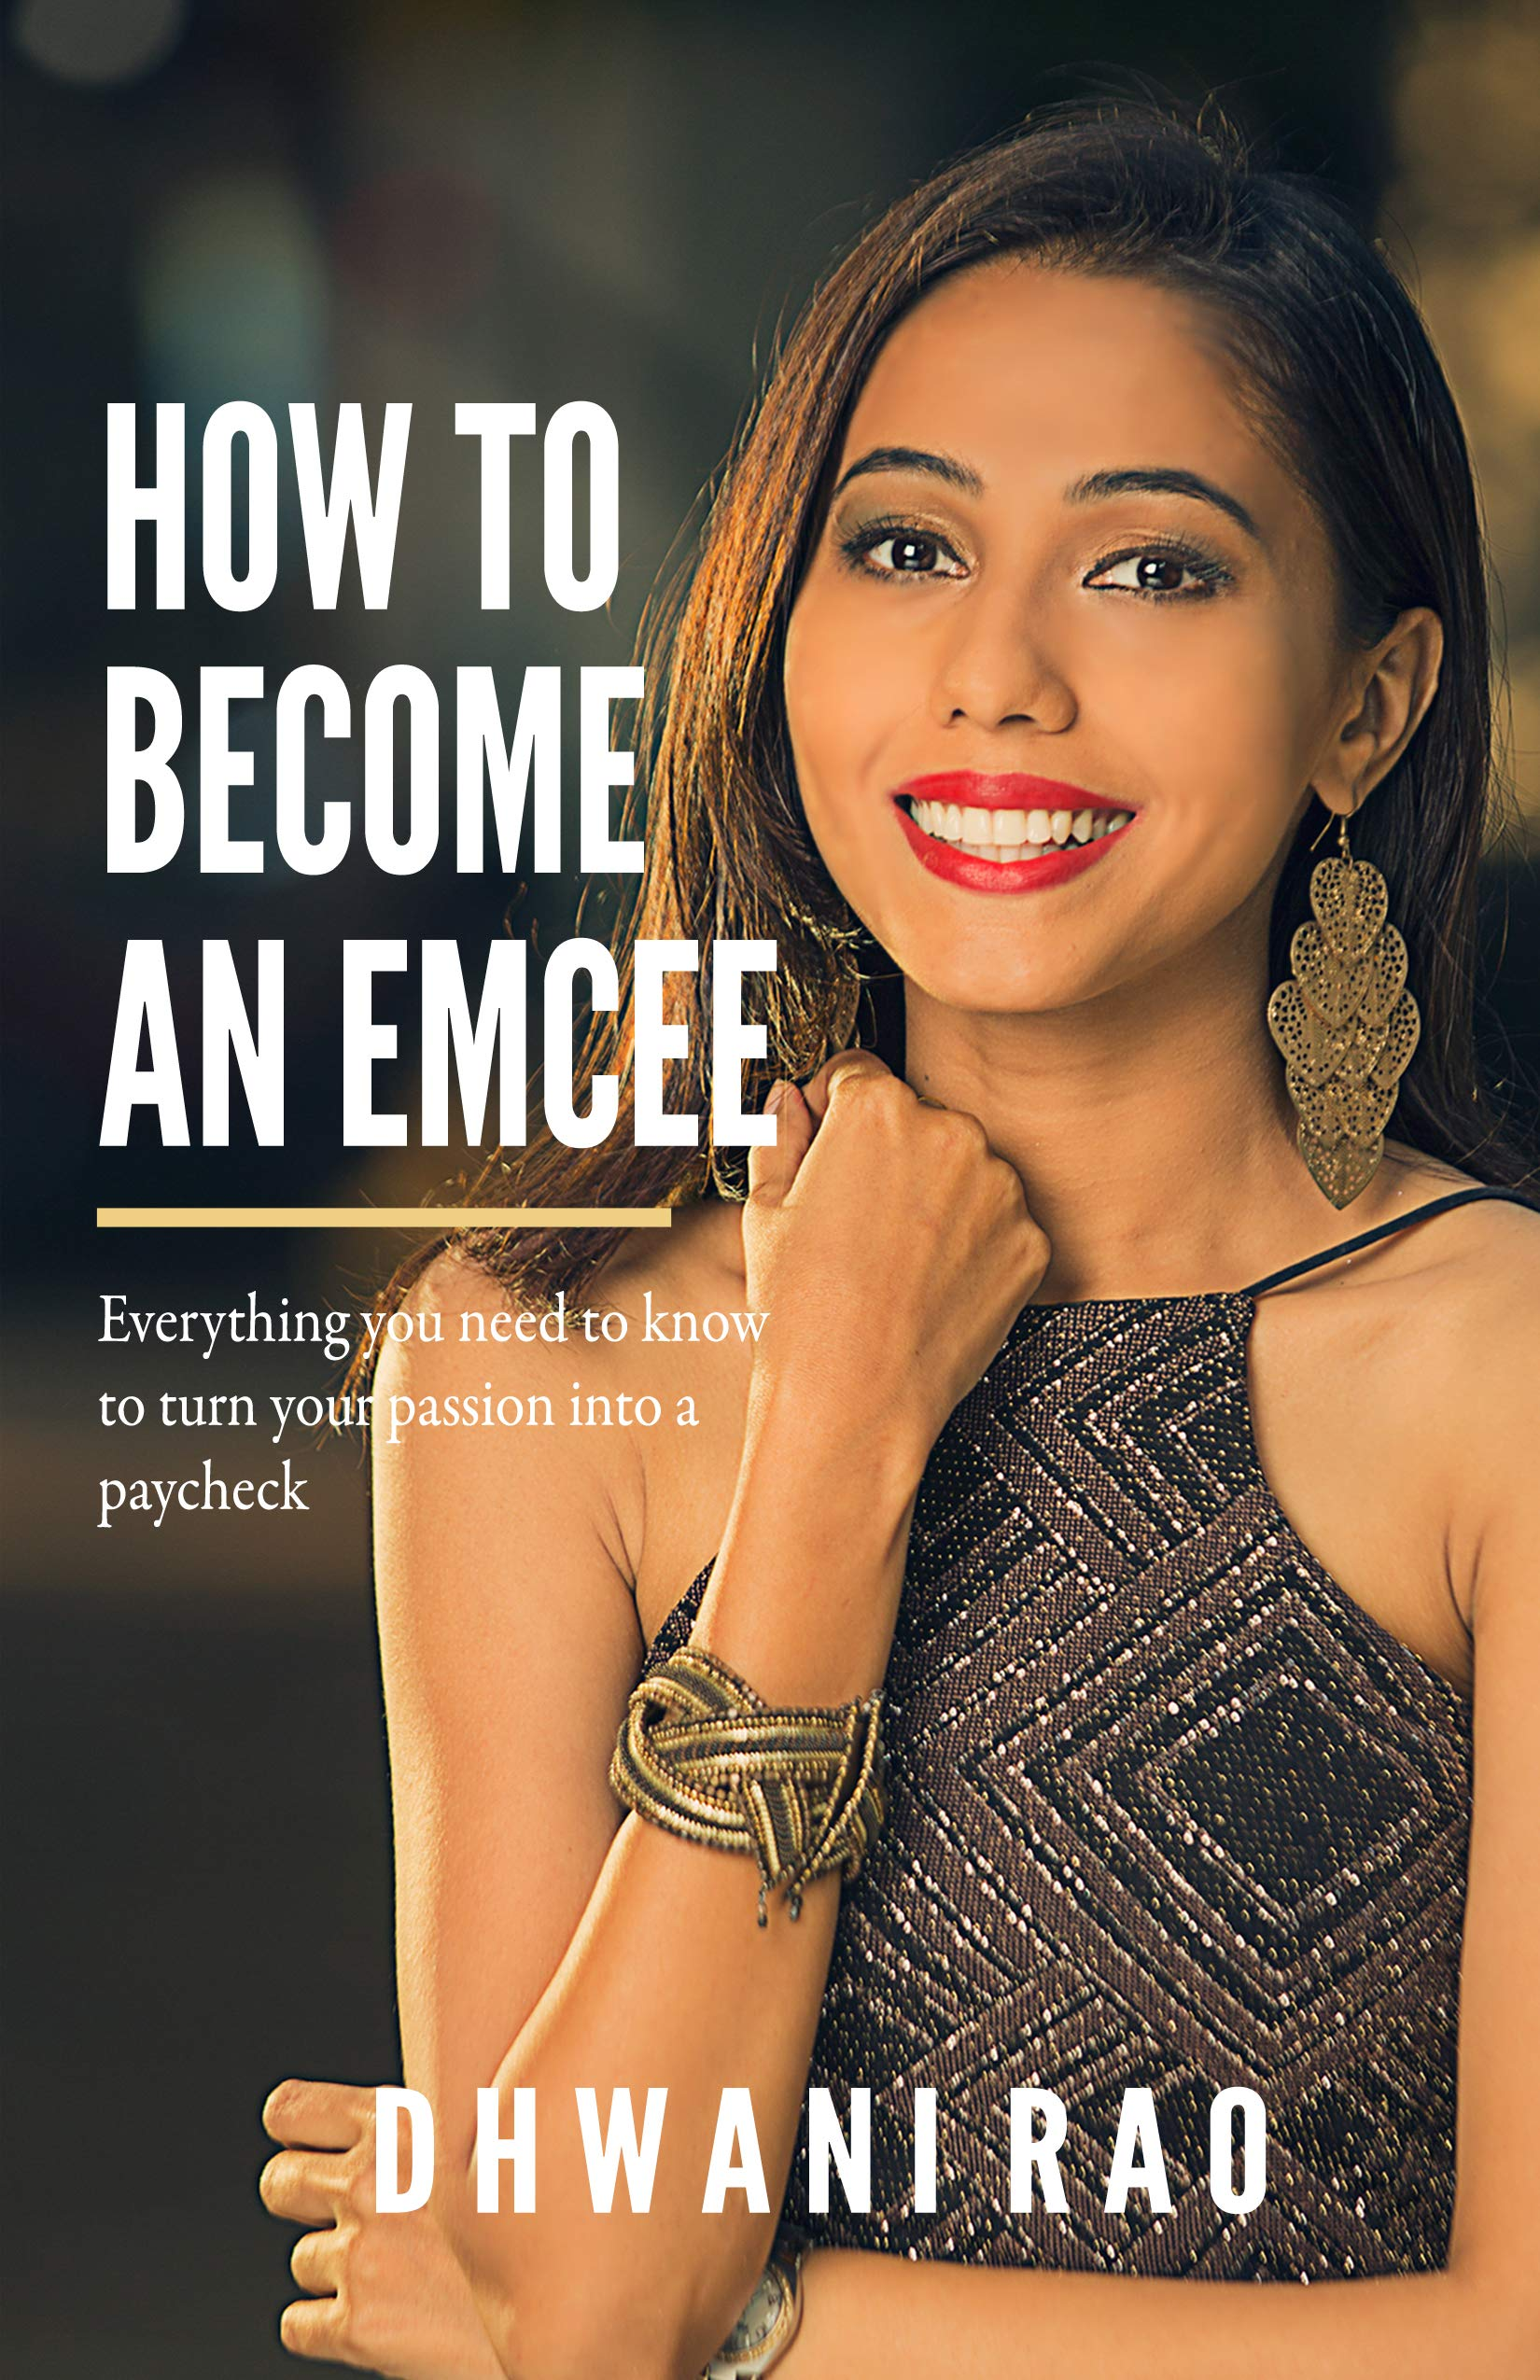 How to Become an Emcee: Everything you need to know to turn your passion into a paycheck